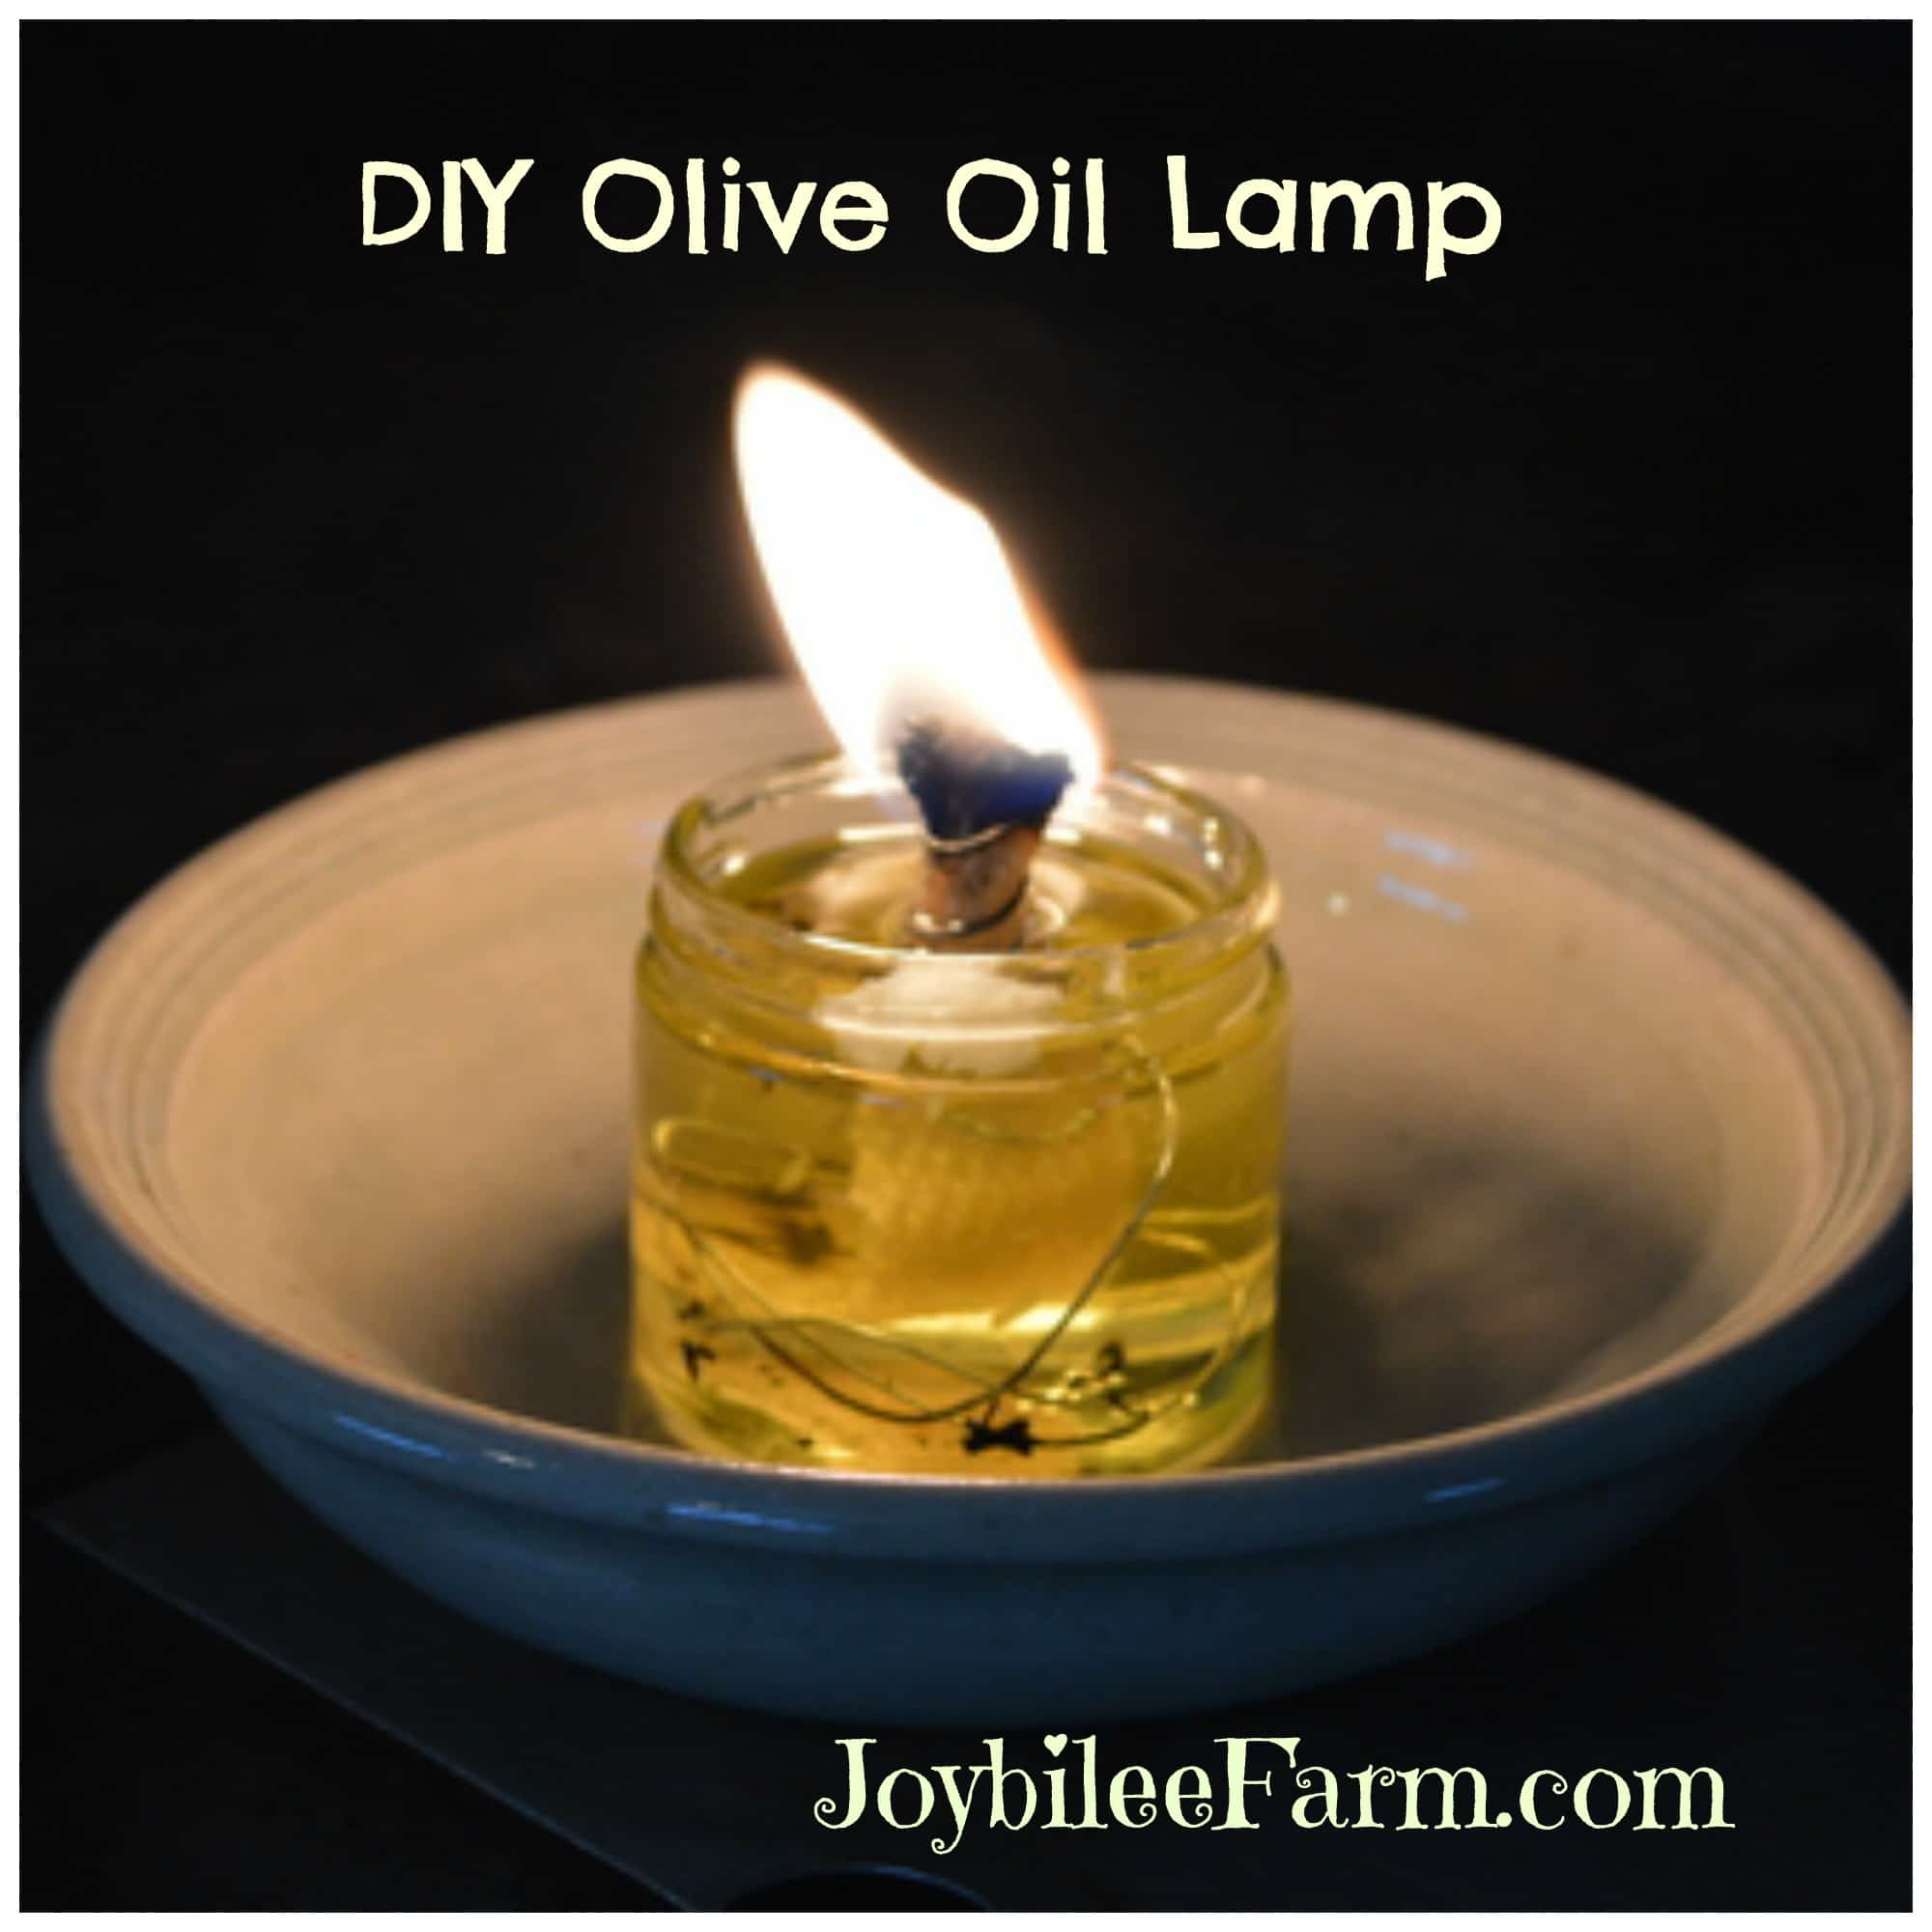 Diy Kerosene Lamp Diy Olive Oil Lamp The Lost Art You Need To Know Joybilee Farm